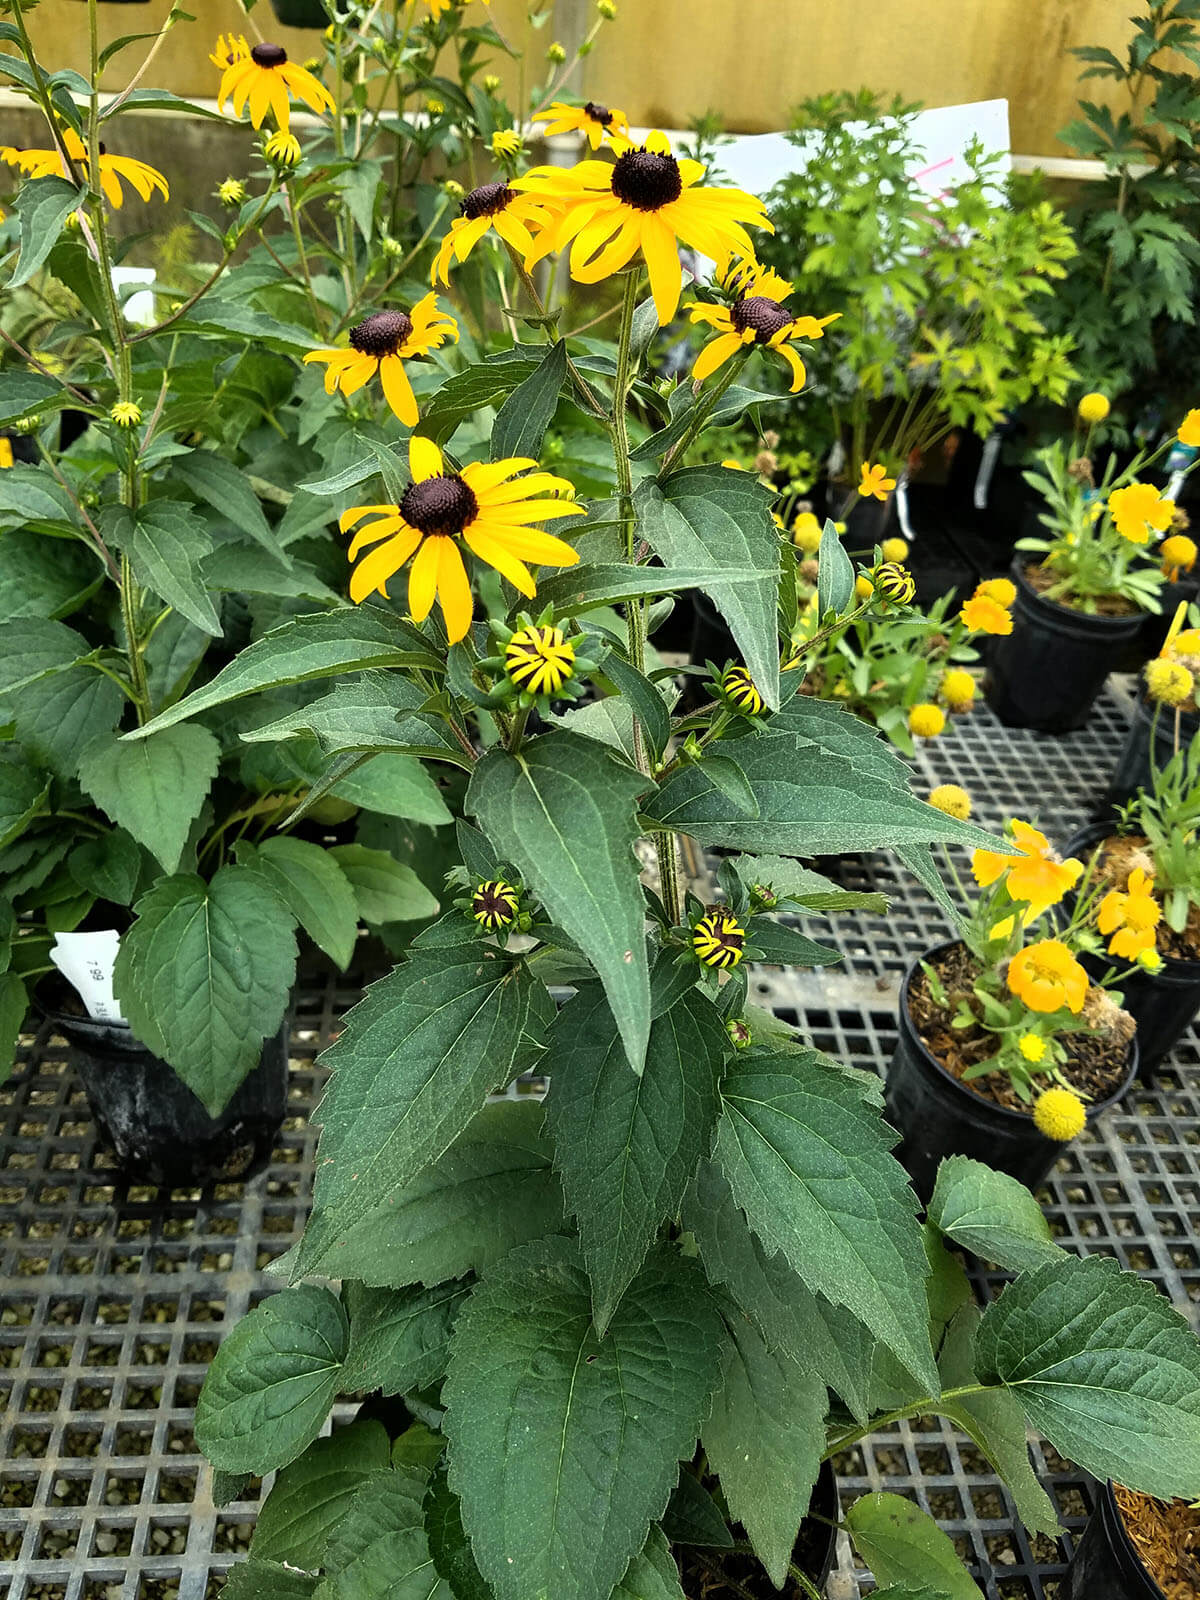 Abell Nursery - Garden Center - Bloomington - Tree Farm - Black Eyed Susan Goldstrum Rudbeckia